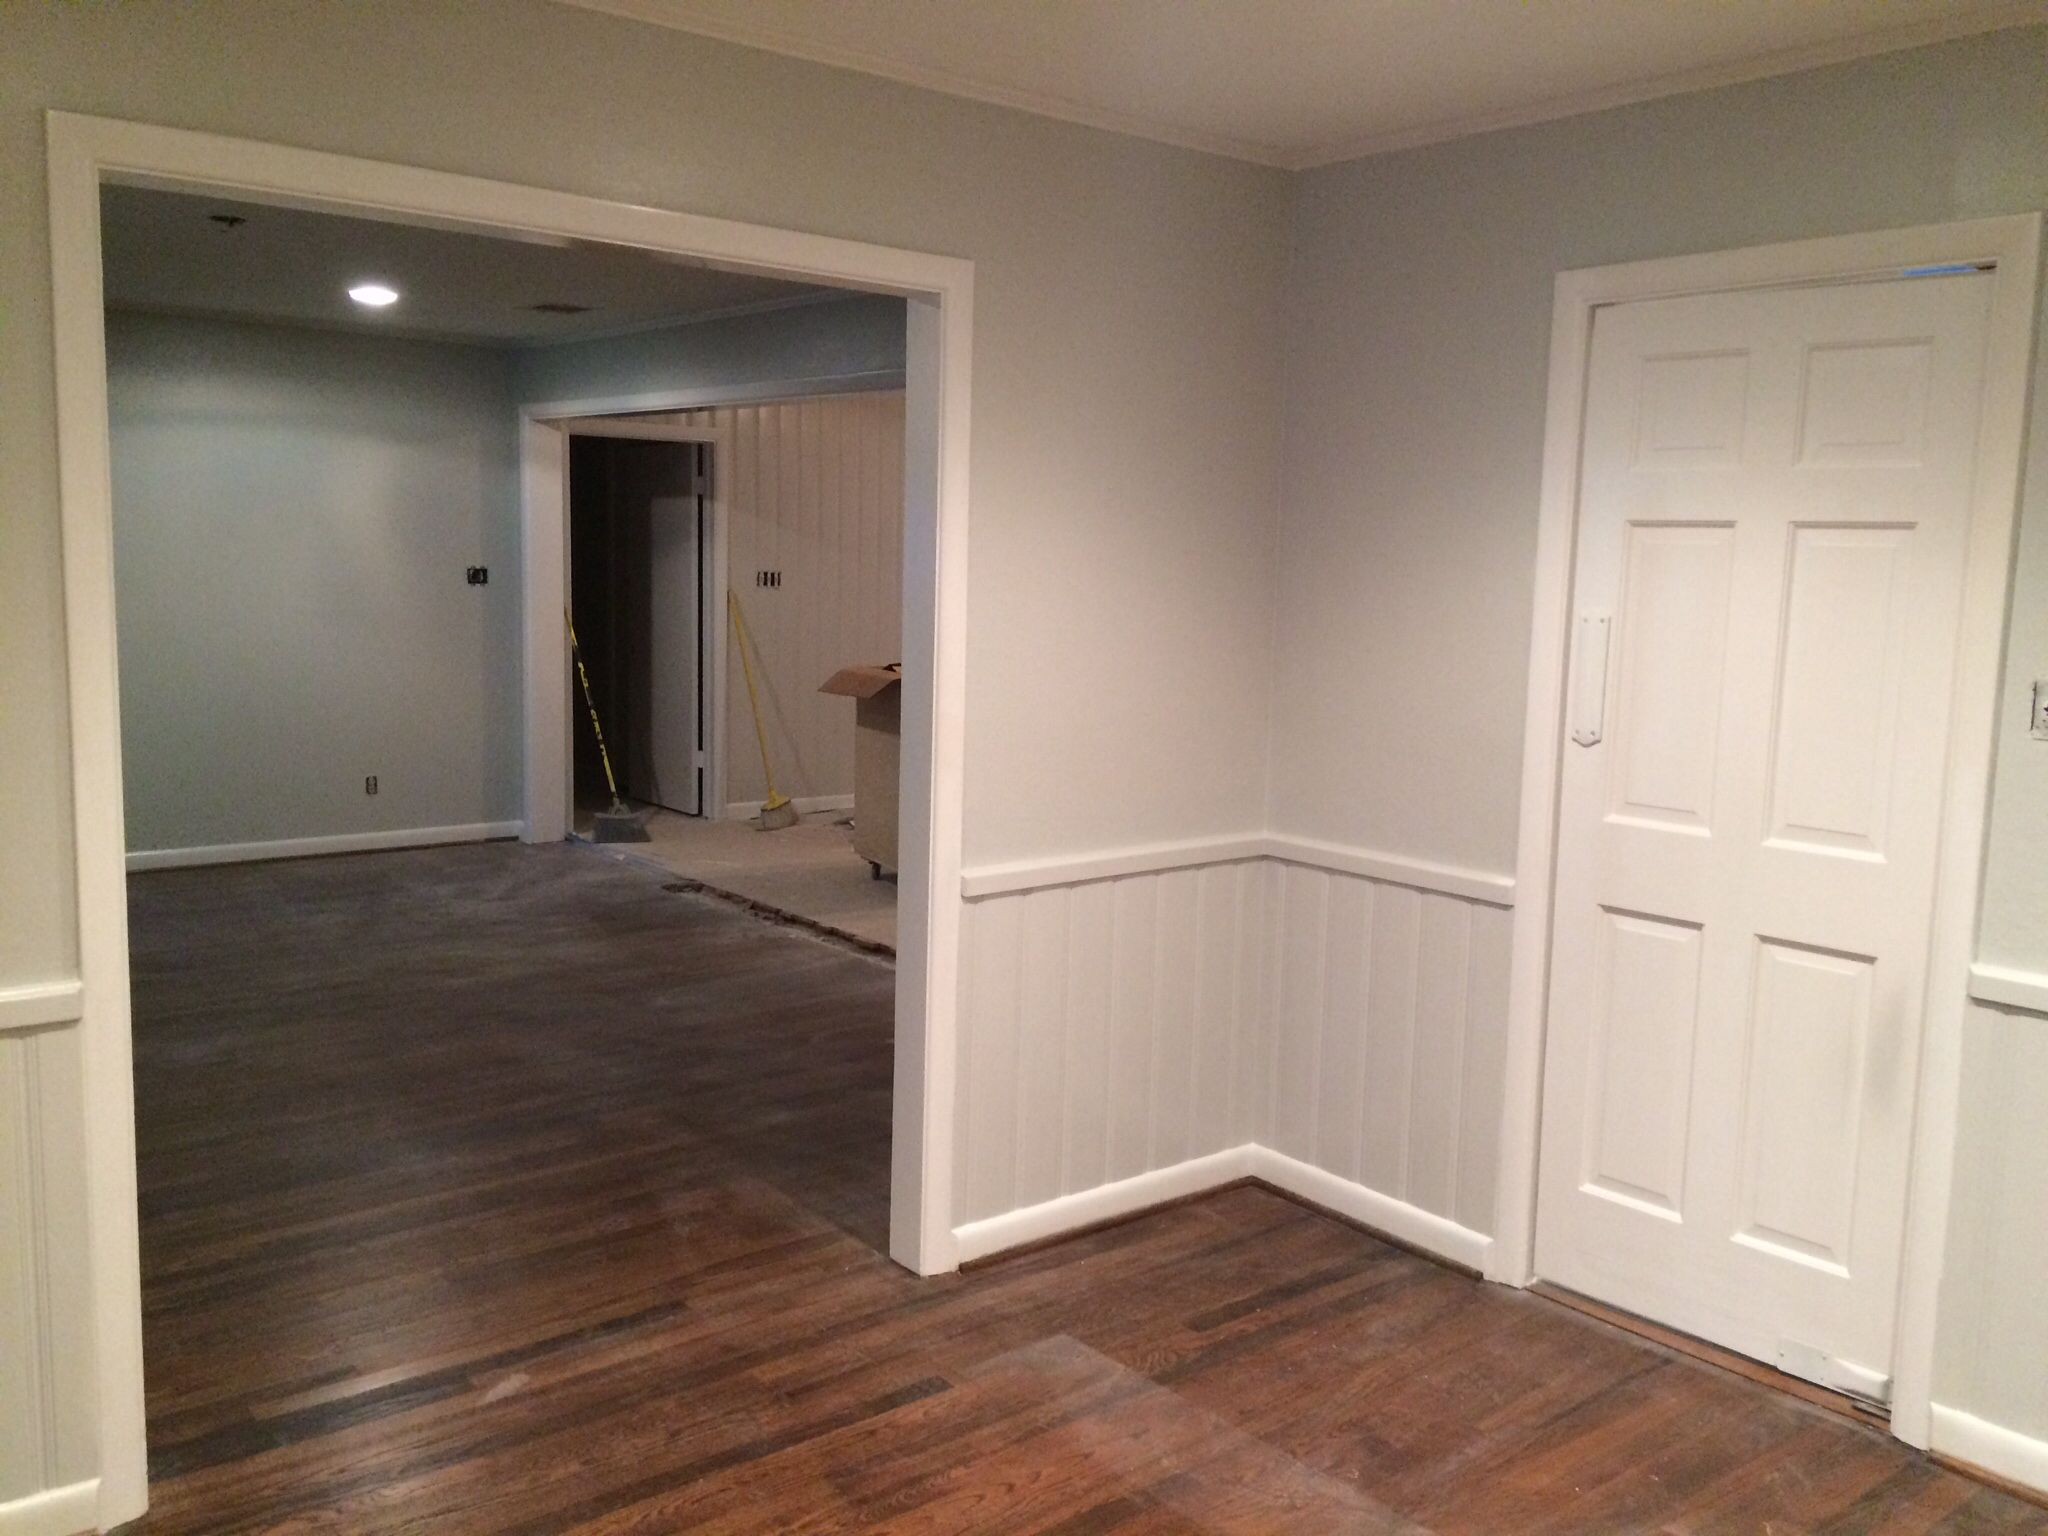 Sherwin williams popular greys - Sherwin Williams On The Rocks Perfect Shade Of Gray Not Too Warm